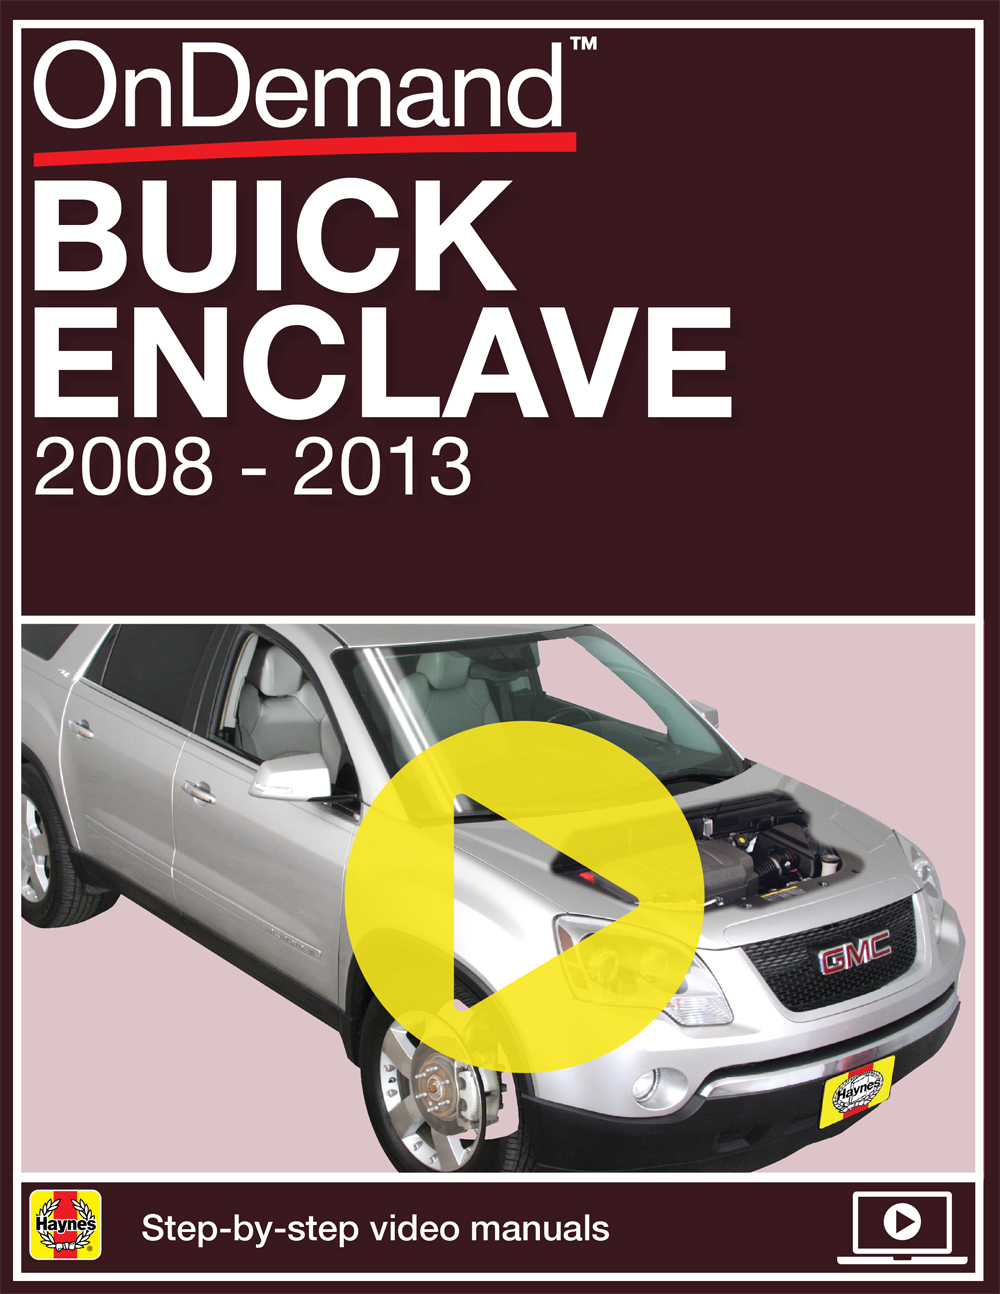 All jobs for Buick Enclave 2008-2013 3.6 V6 Petrol